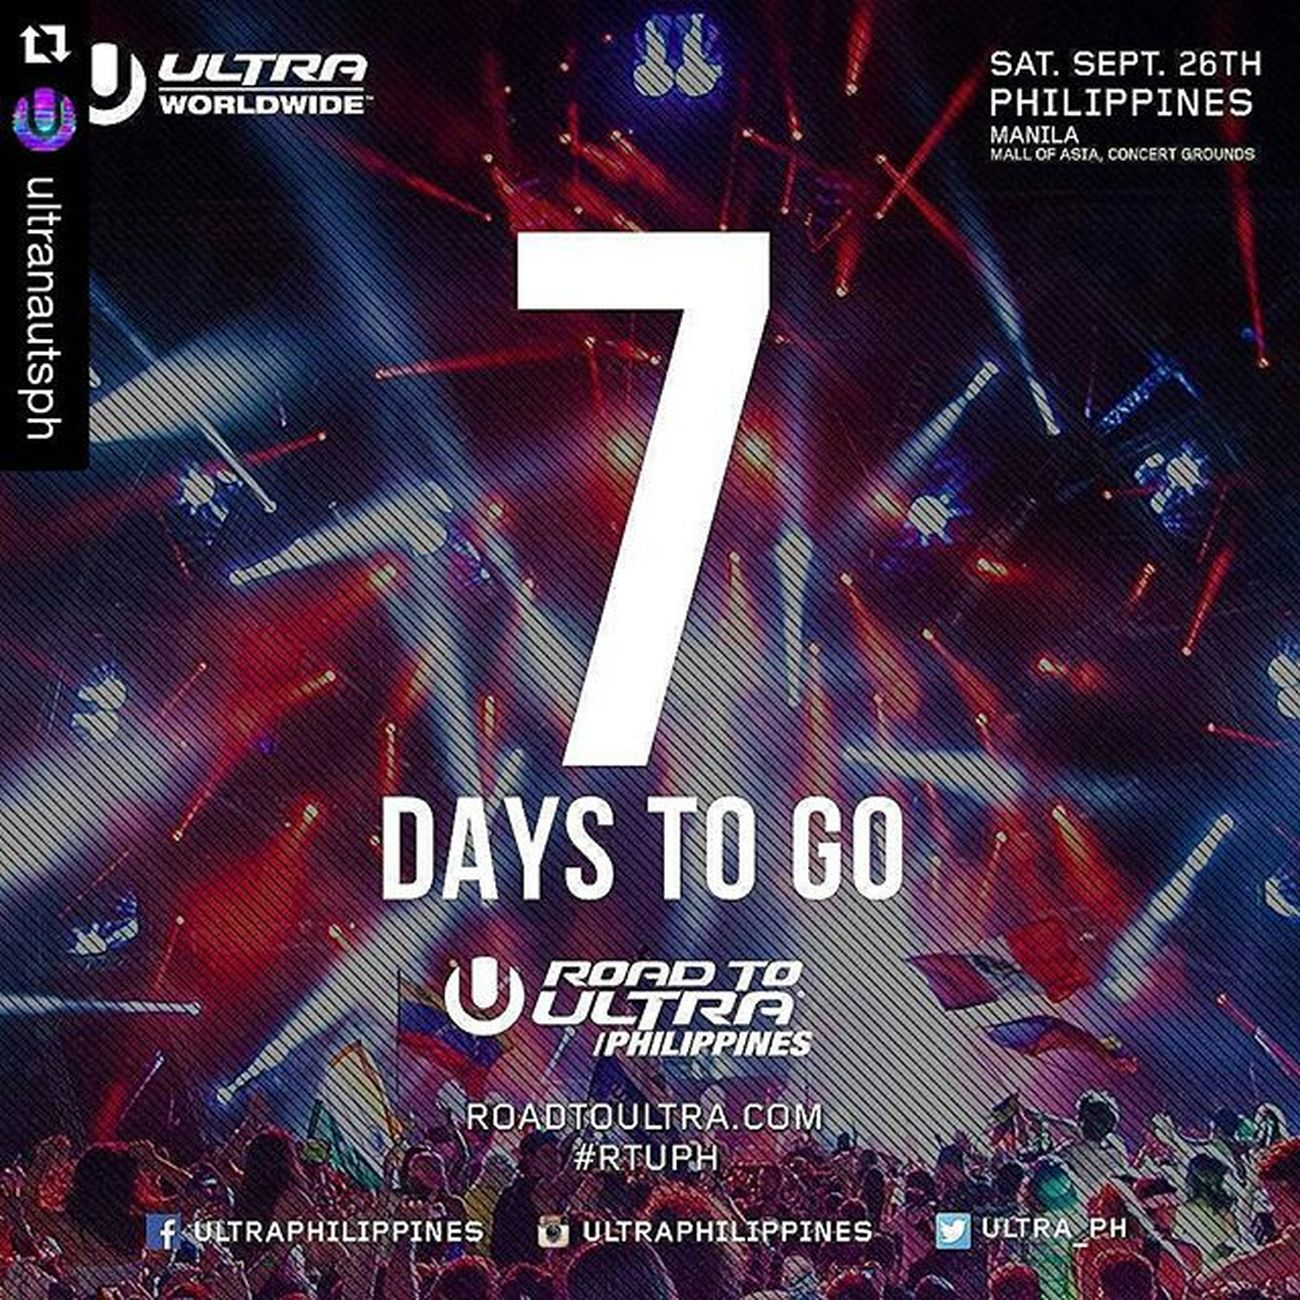 Roadtoultraphilippines2015 Repost @ultranautsph with @repostapp ・・・ We are exactly 7 days away from the very first Road to Ultra Philippines!! Are you excited yet? We're getting closer and closer to September 26, so you better get your tickets now! For table reservations or other inquires contact 09288655133 RTUPH Smartroadtoultraph Skrillex  Feddelegrand Wegogrand WandW Atrak Vicetone Mija Zedsdead